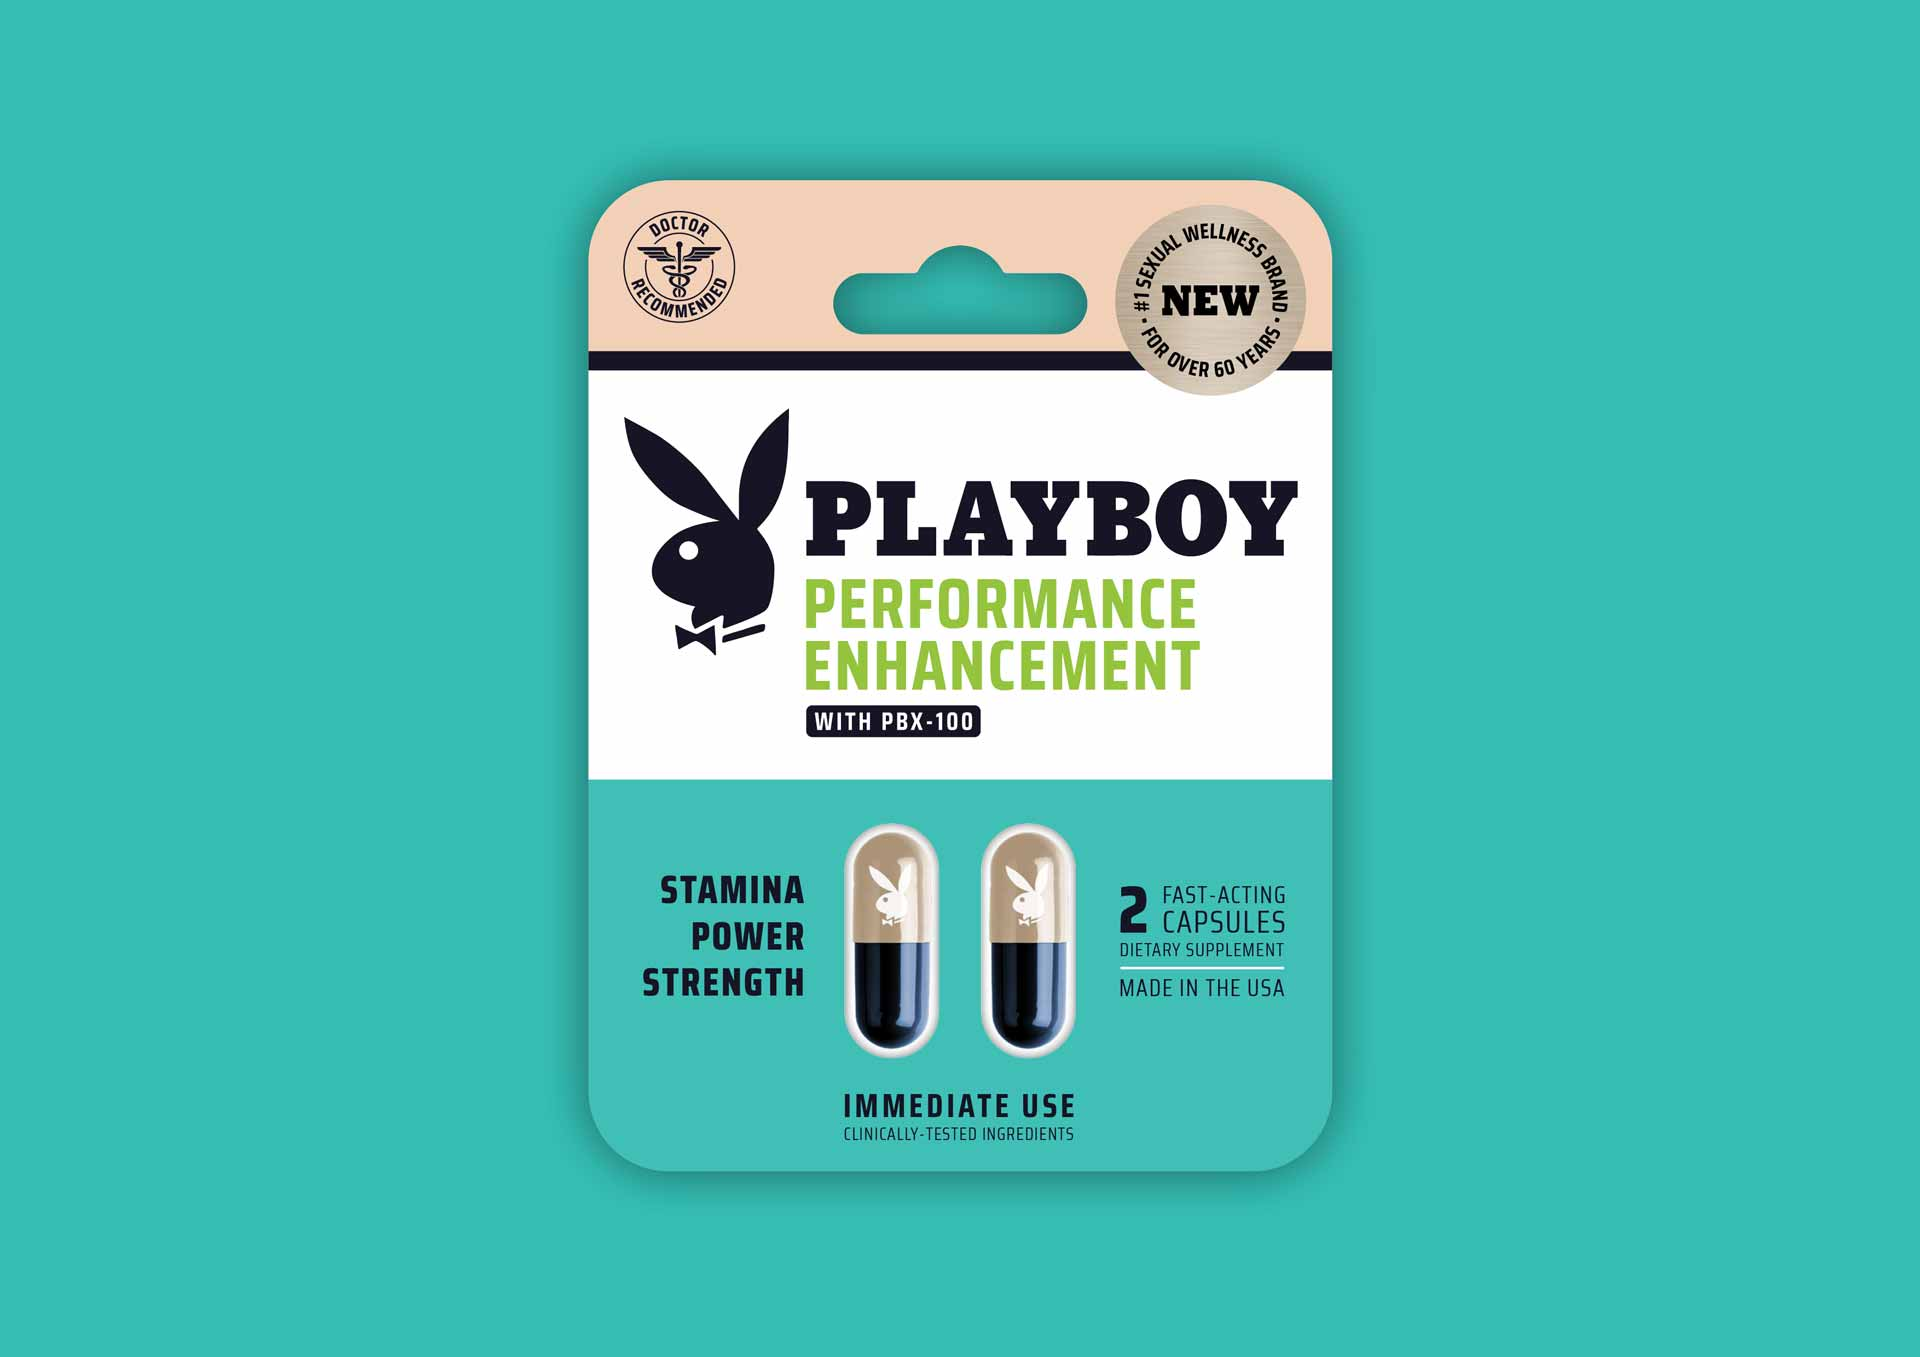 playboy-packaging-13